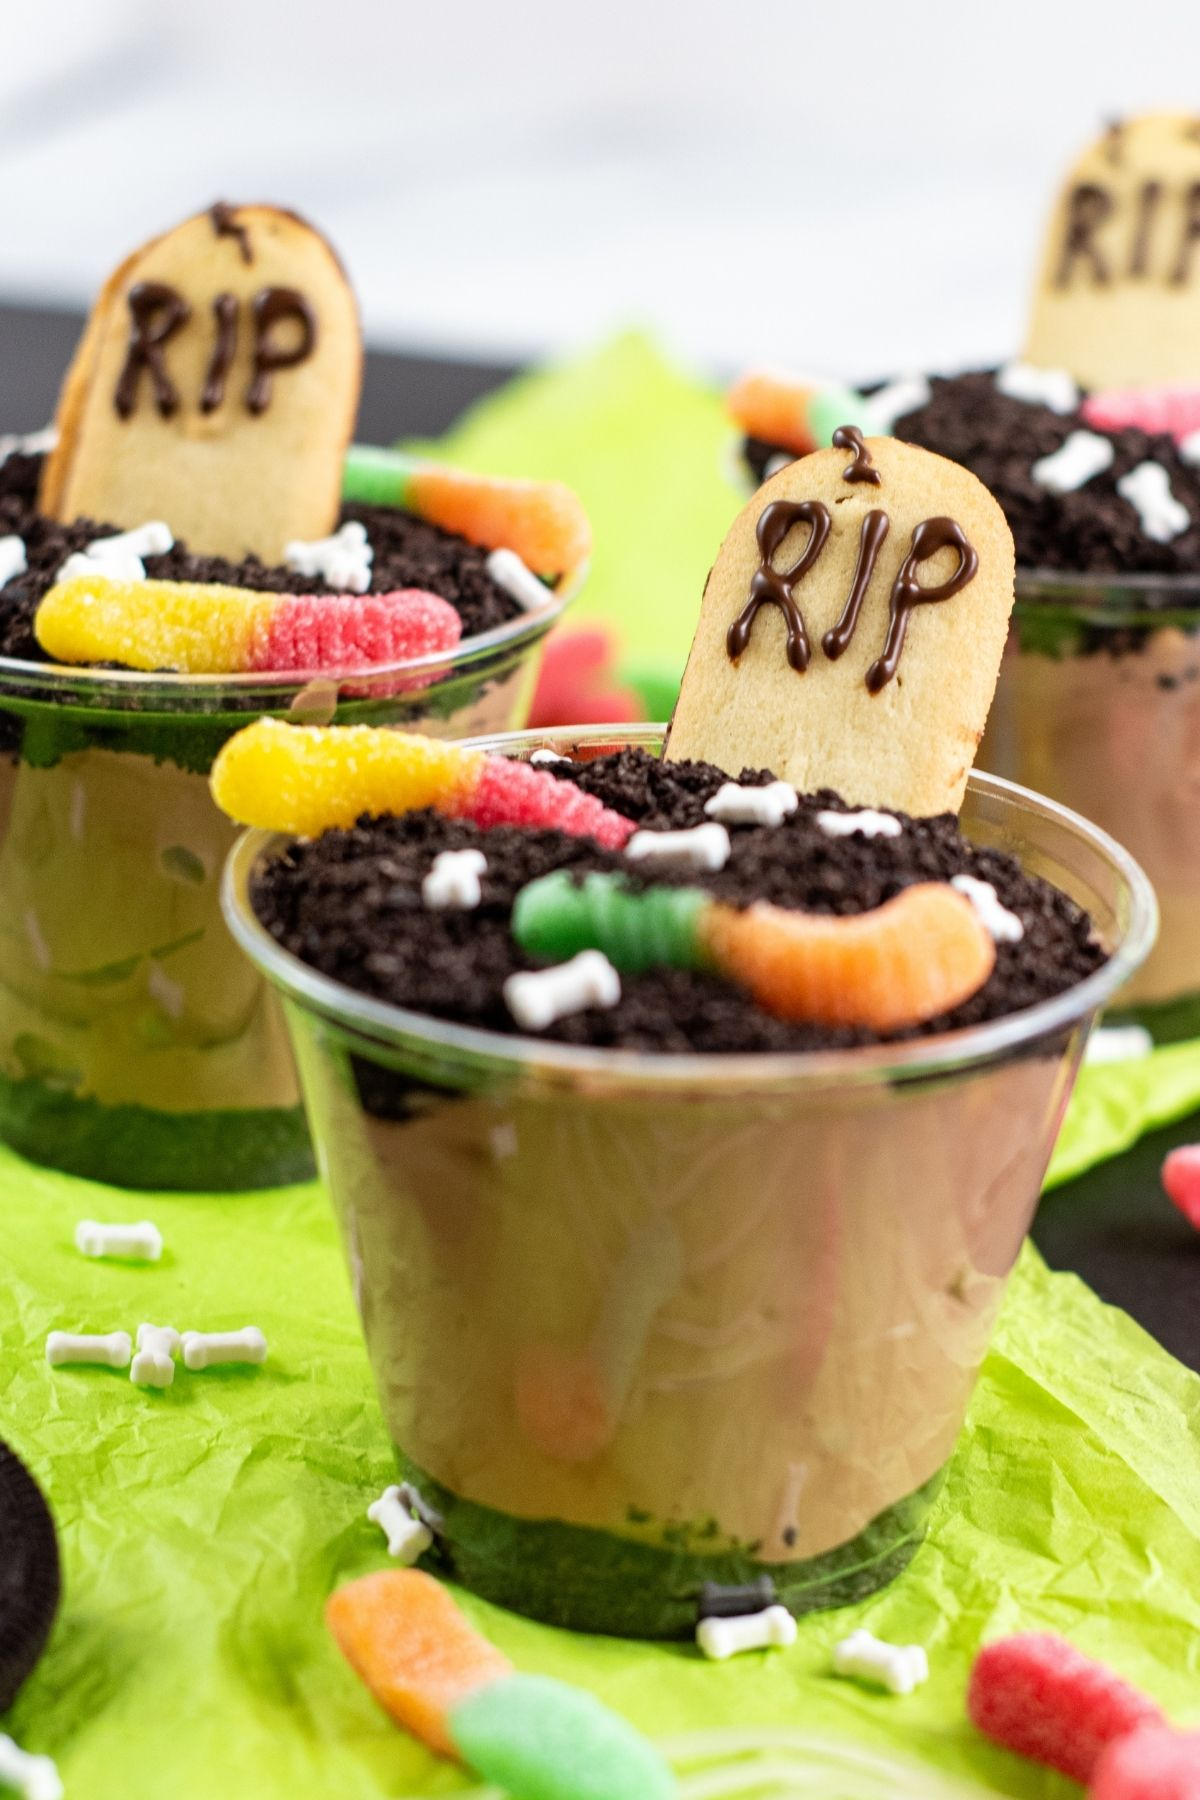 short plastic cup with chocolate pudding and crushed oreos and a RIP cookie and worms on top